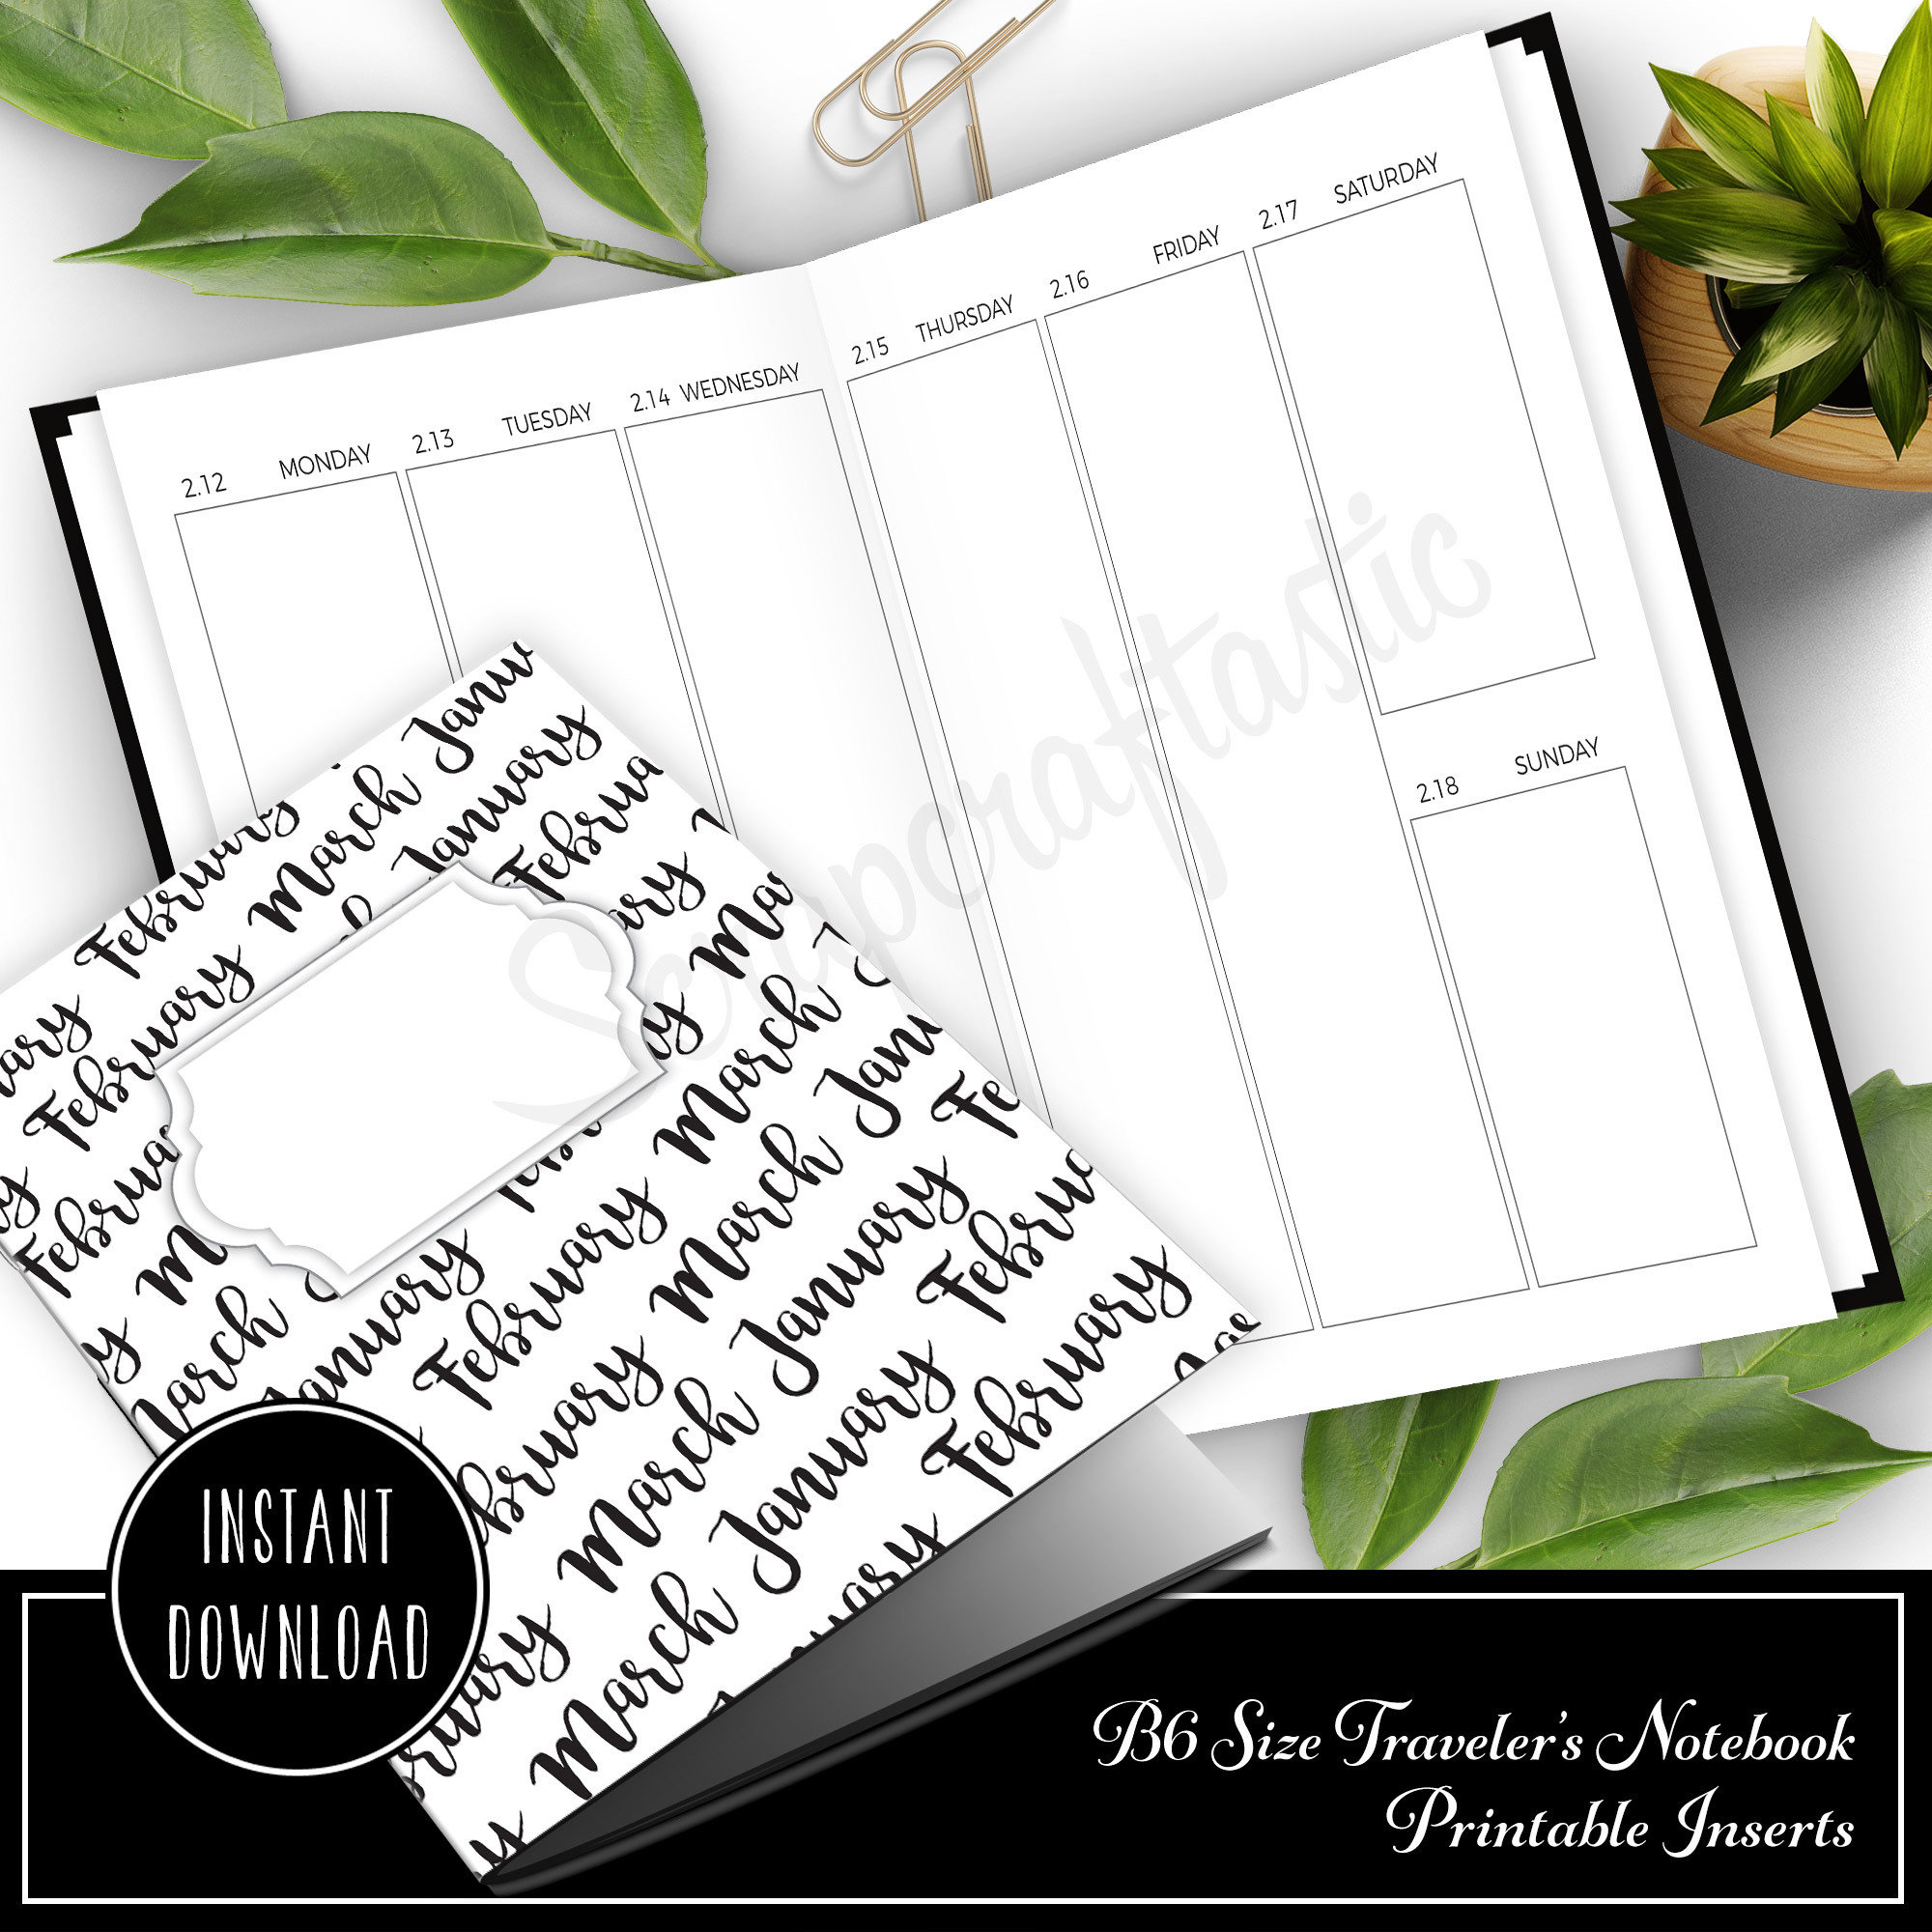 Full Notebook Dated: JANUARY-MARCH / 1st Quarter 2018 B6 Size Printable Traveler's Notebook Insert 50033